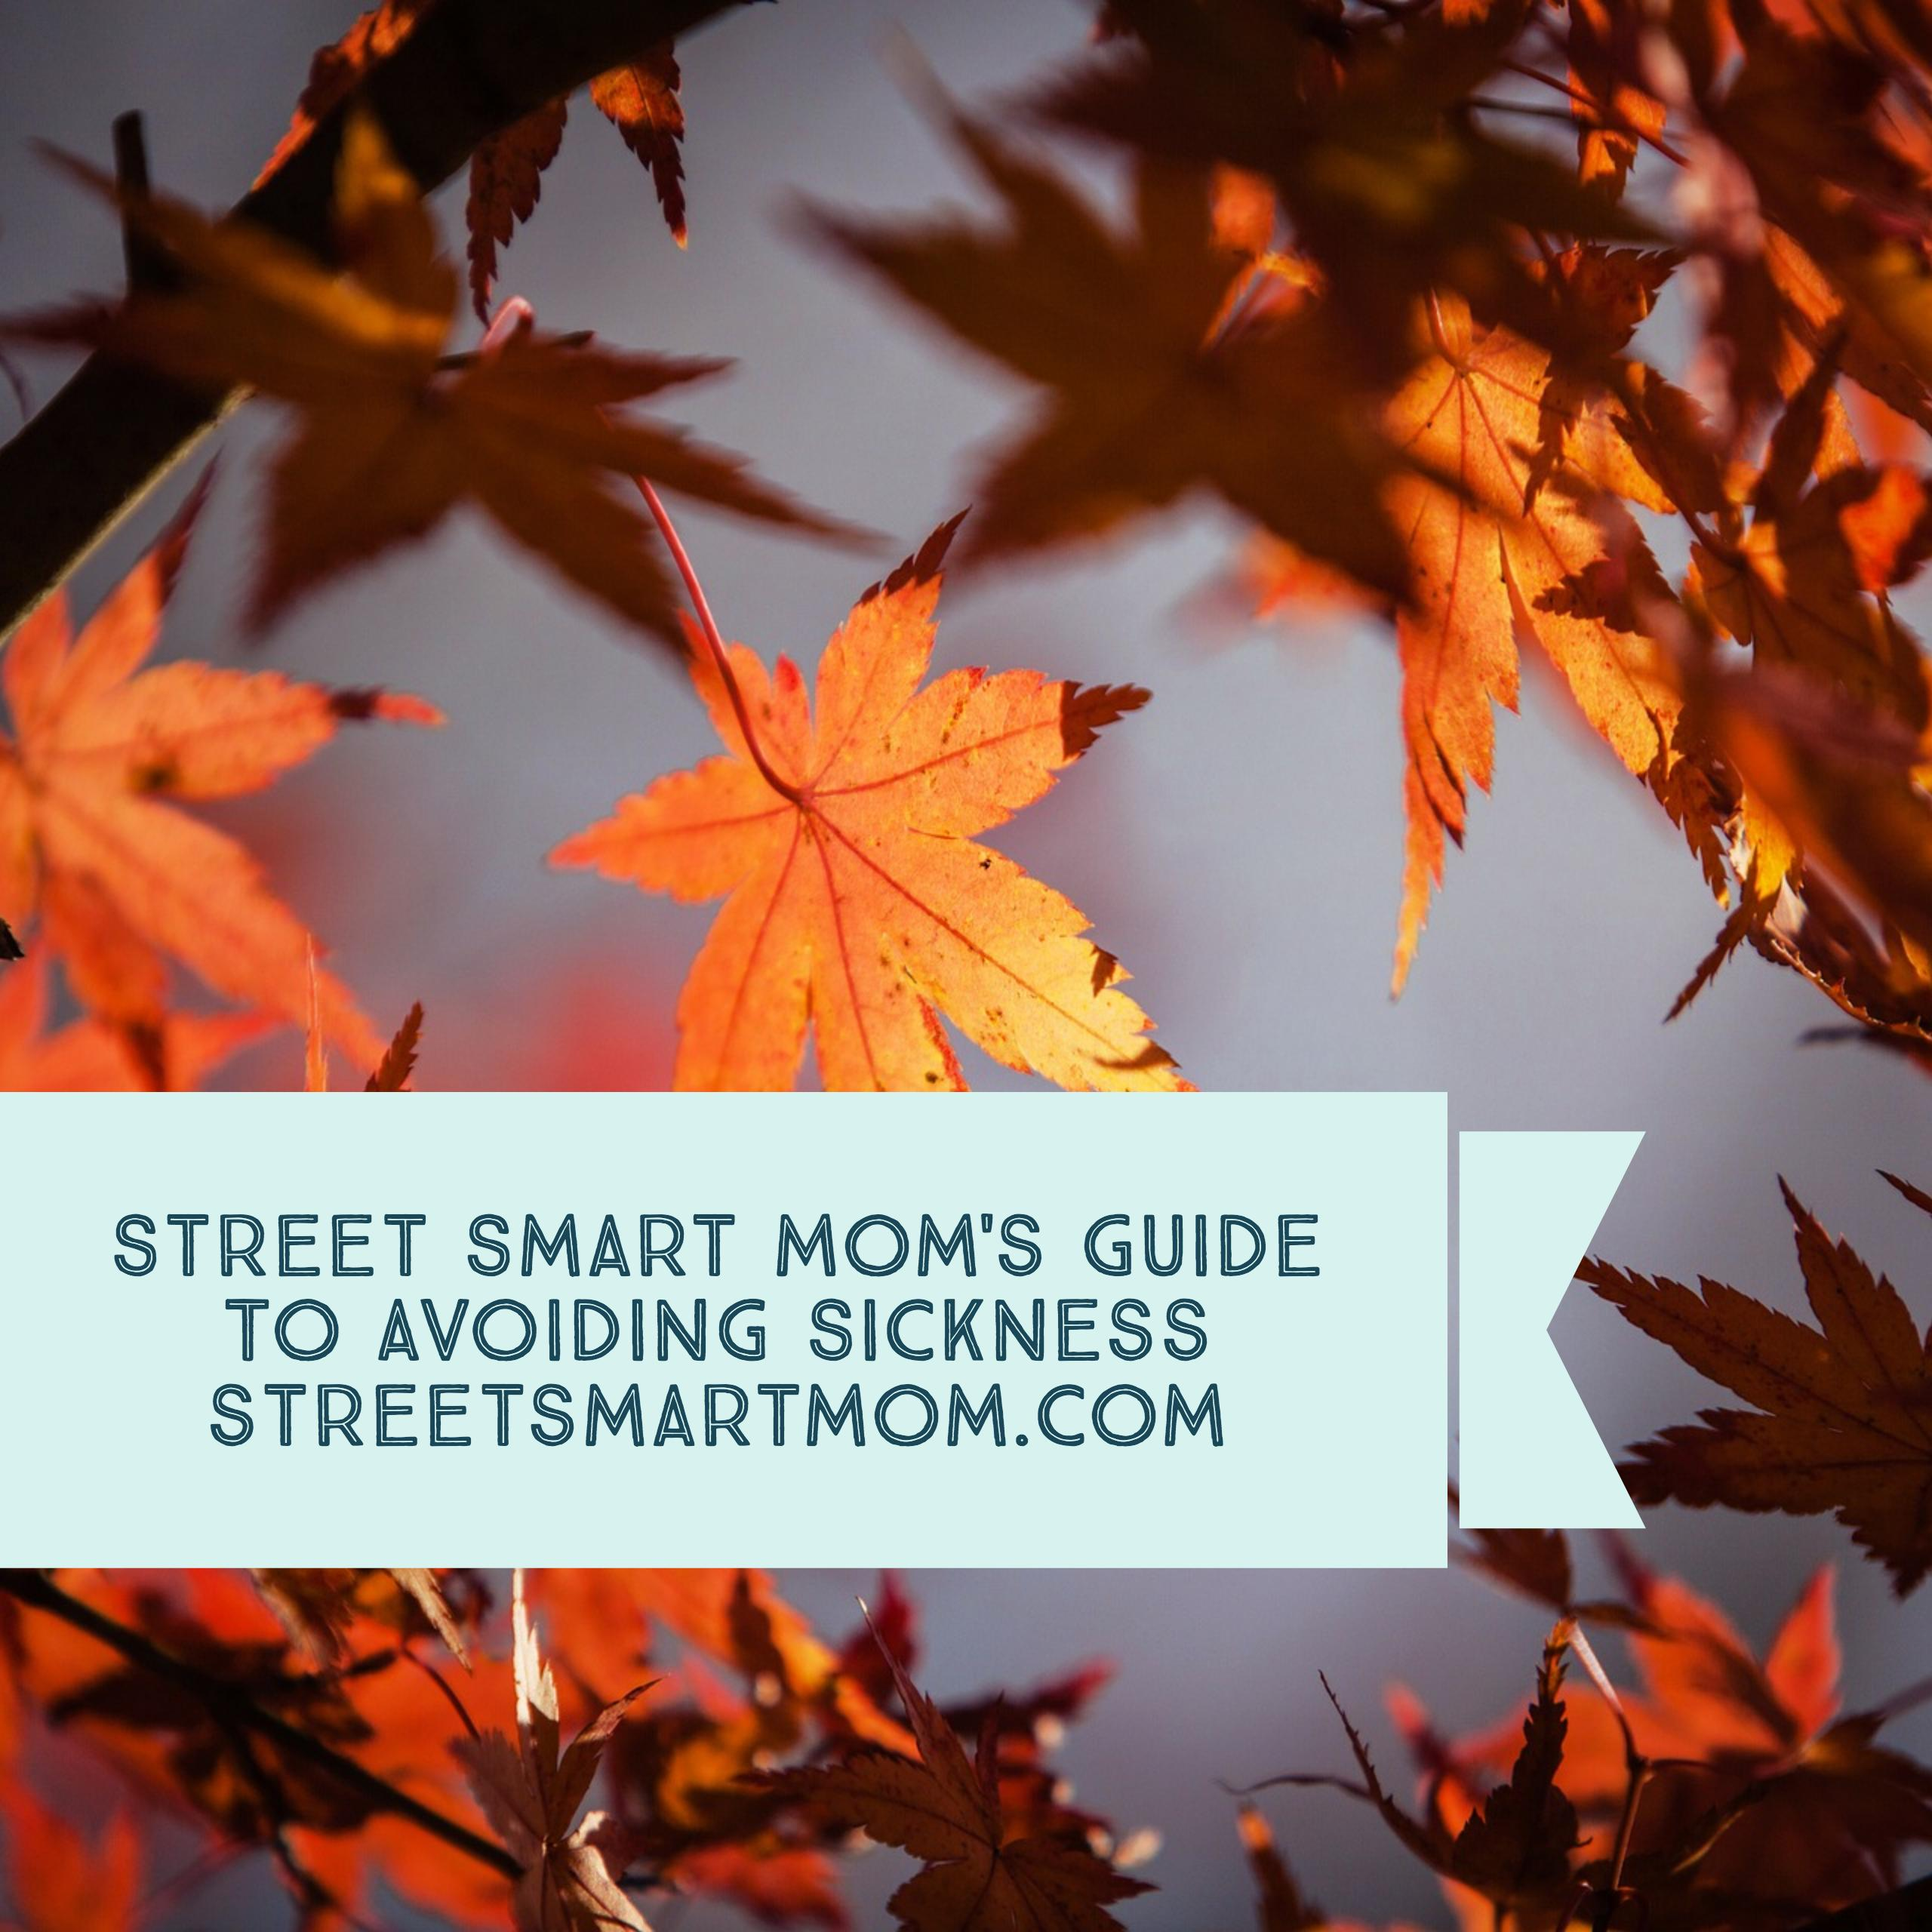 Street Smart Mom's Guide To Avoiding Sickness